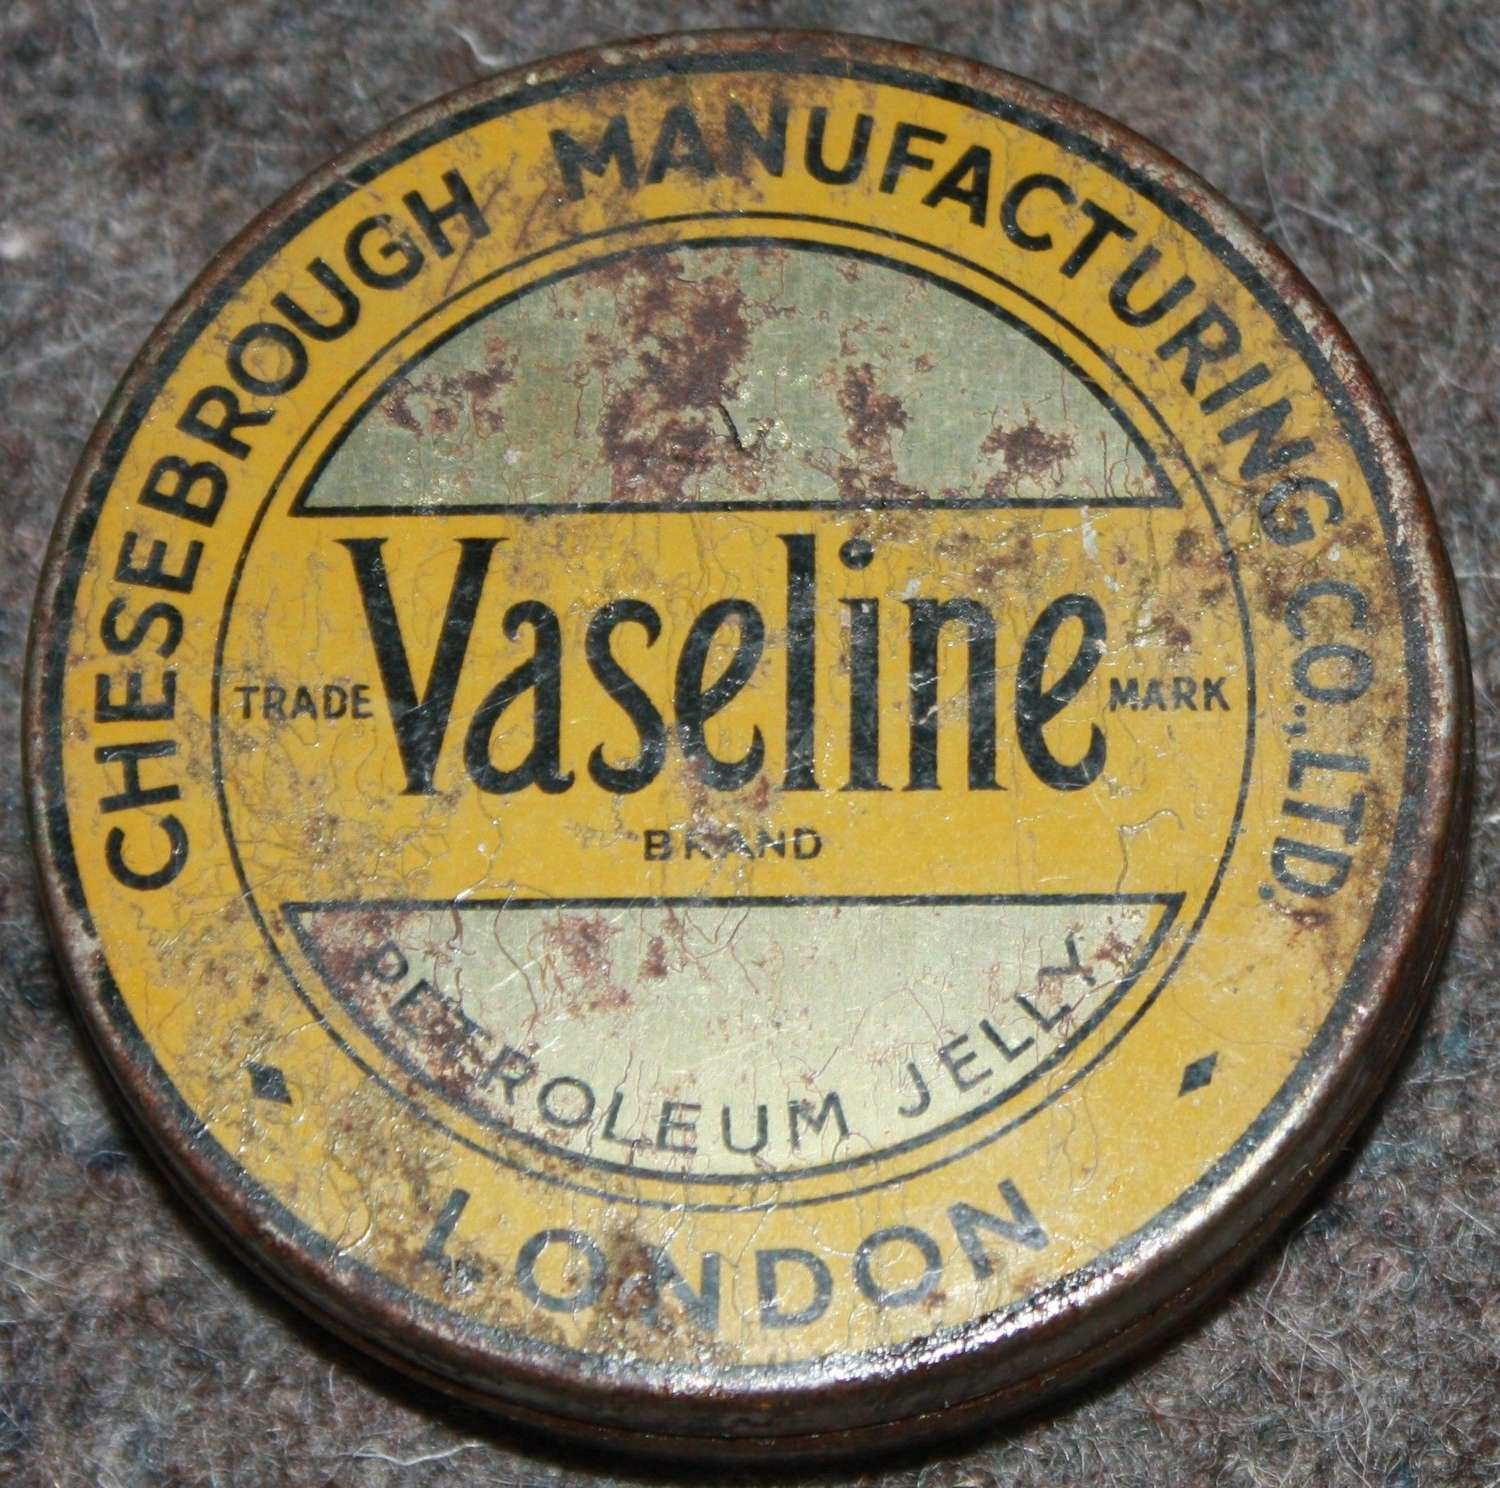 A FULL TIN OF THE WWII PERIOD VASELINE BRITISH MADE EXAMPLE